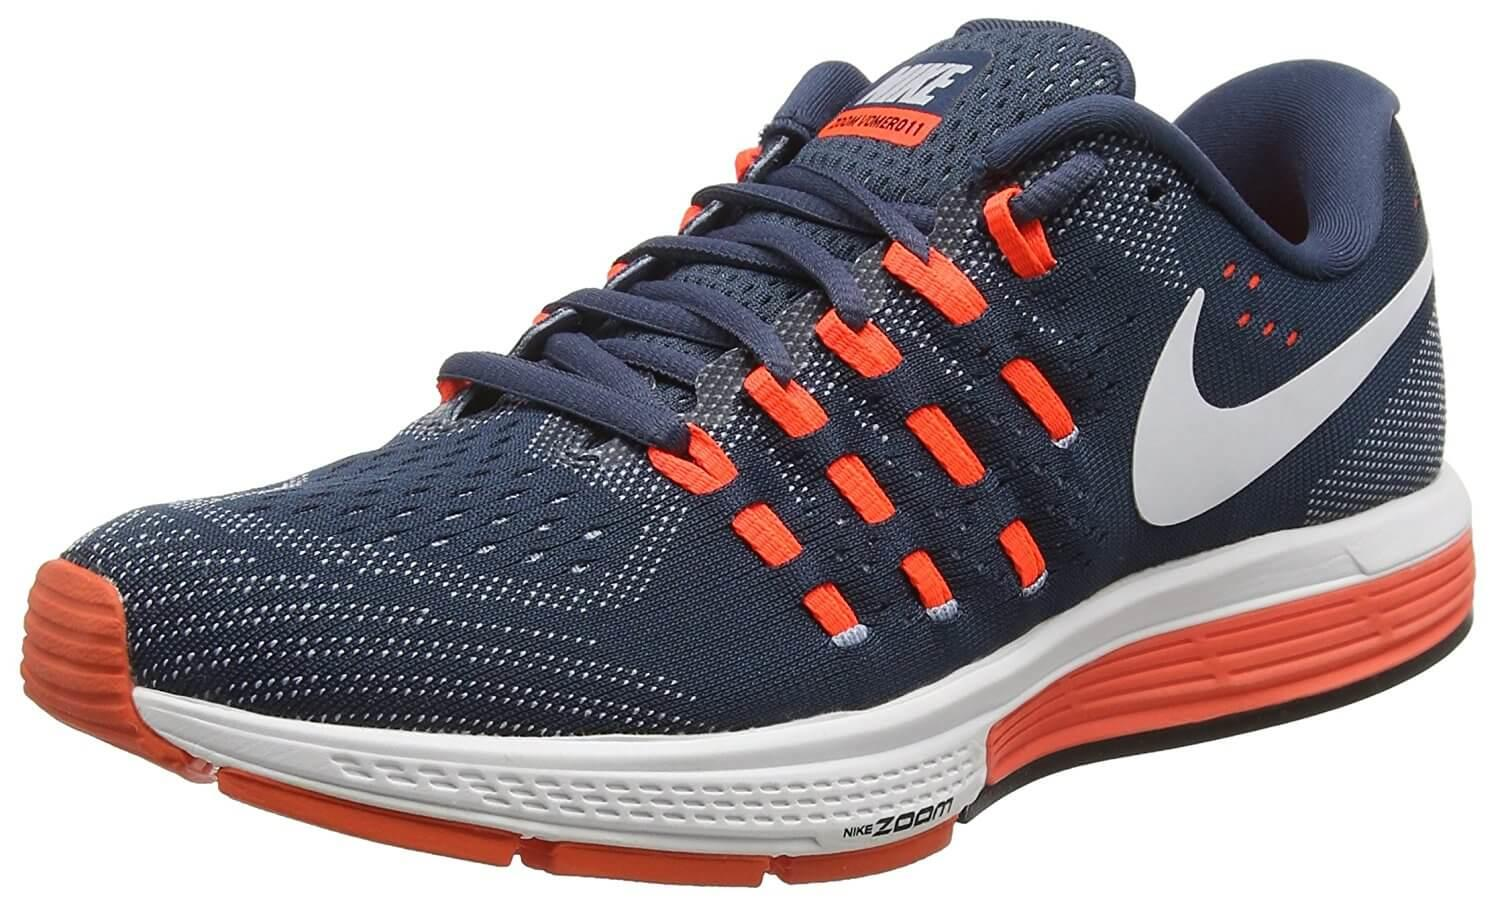 the Nike Air Zoom Vomero 11 is a durable running shoe that will last for many hundreds of miles